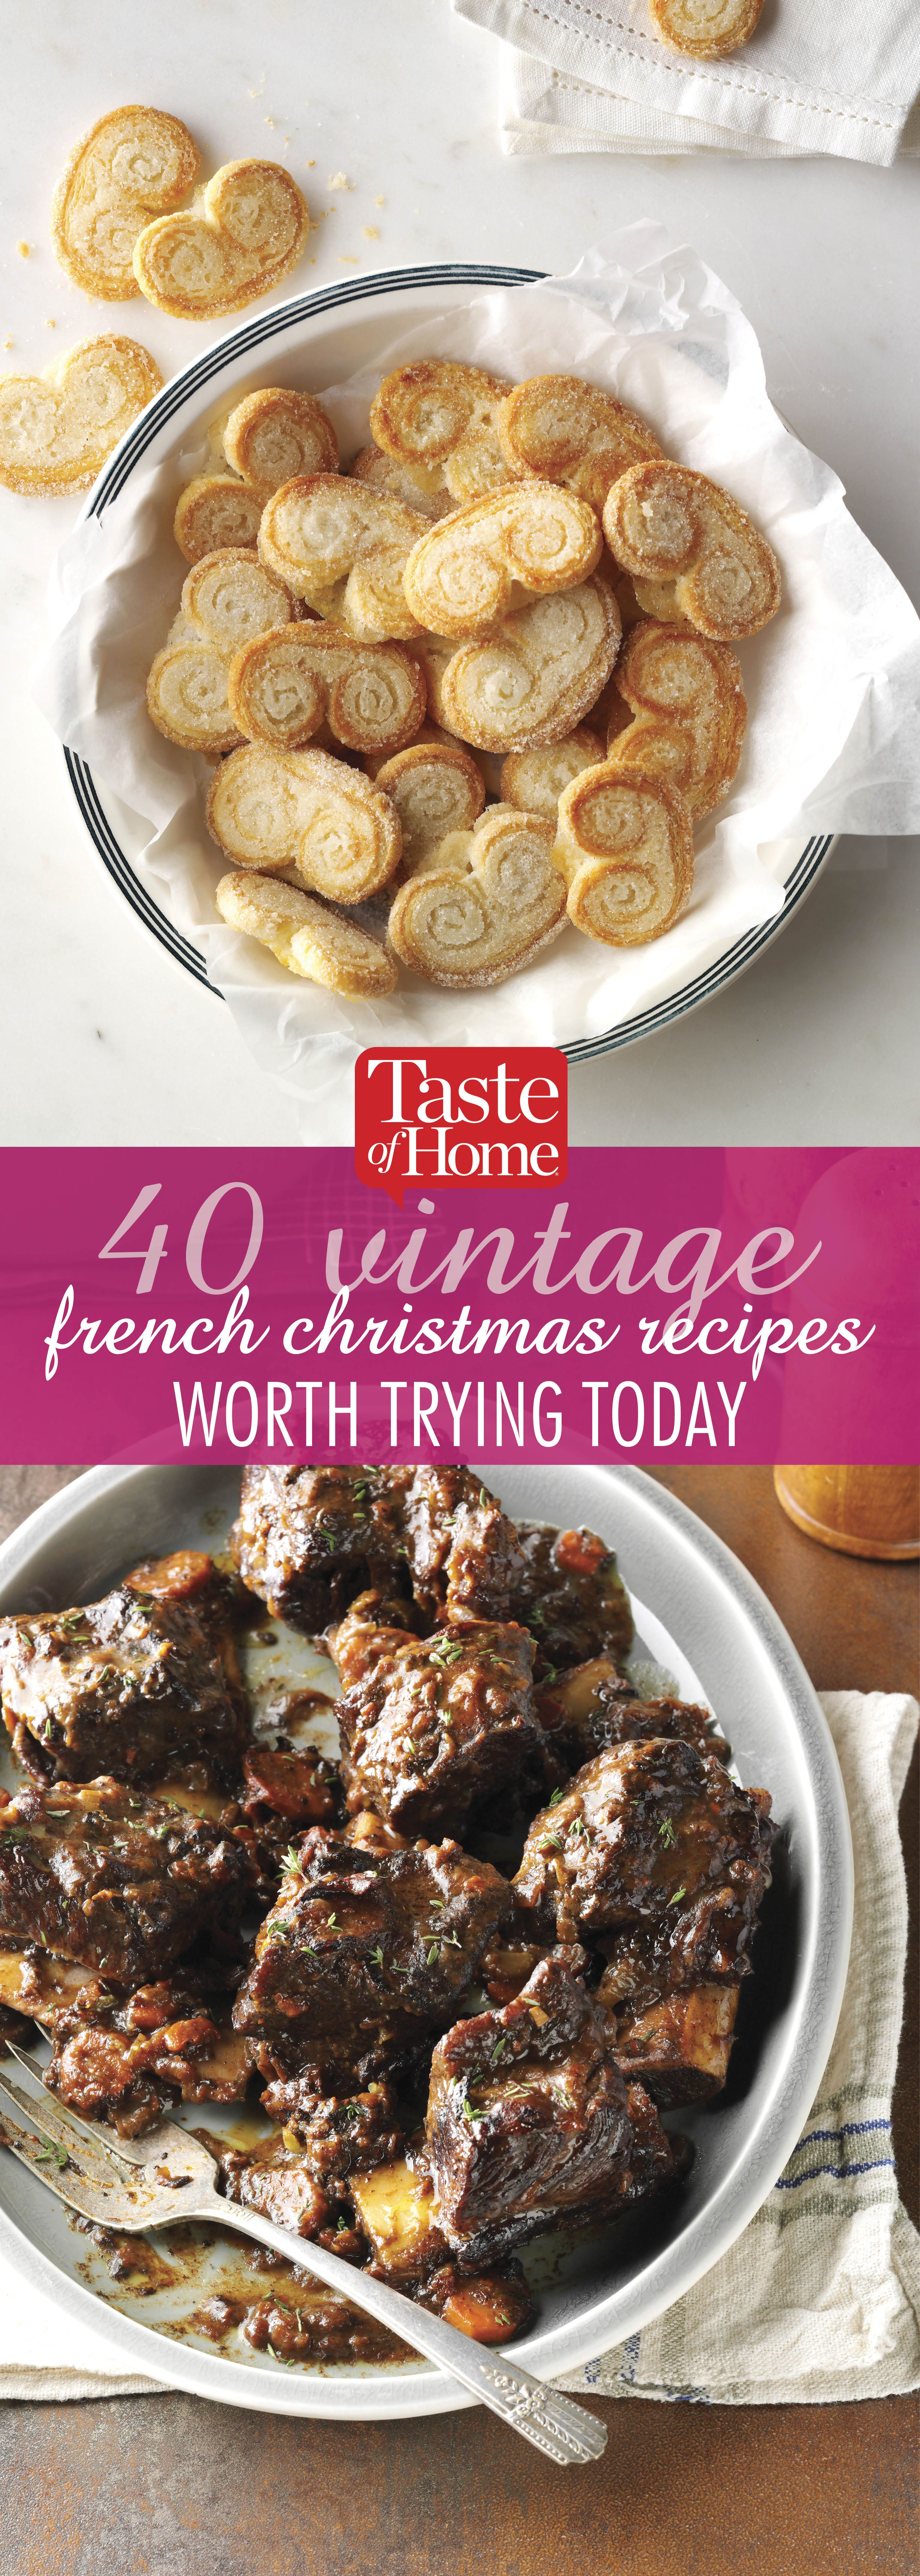 22 vintage french christmas recipes french christmas recipes and 40 vintage french christmas recipes worth trying today forumfinder Gallery